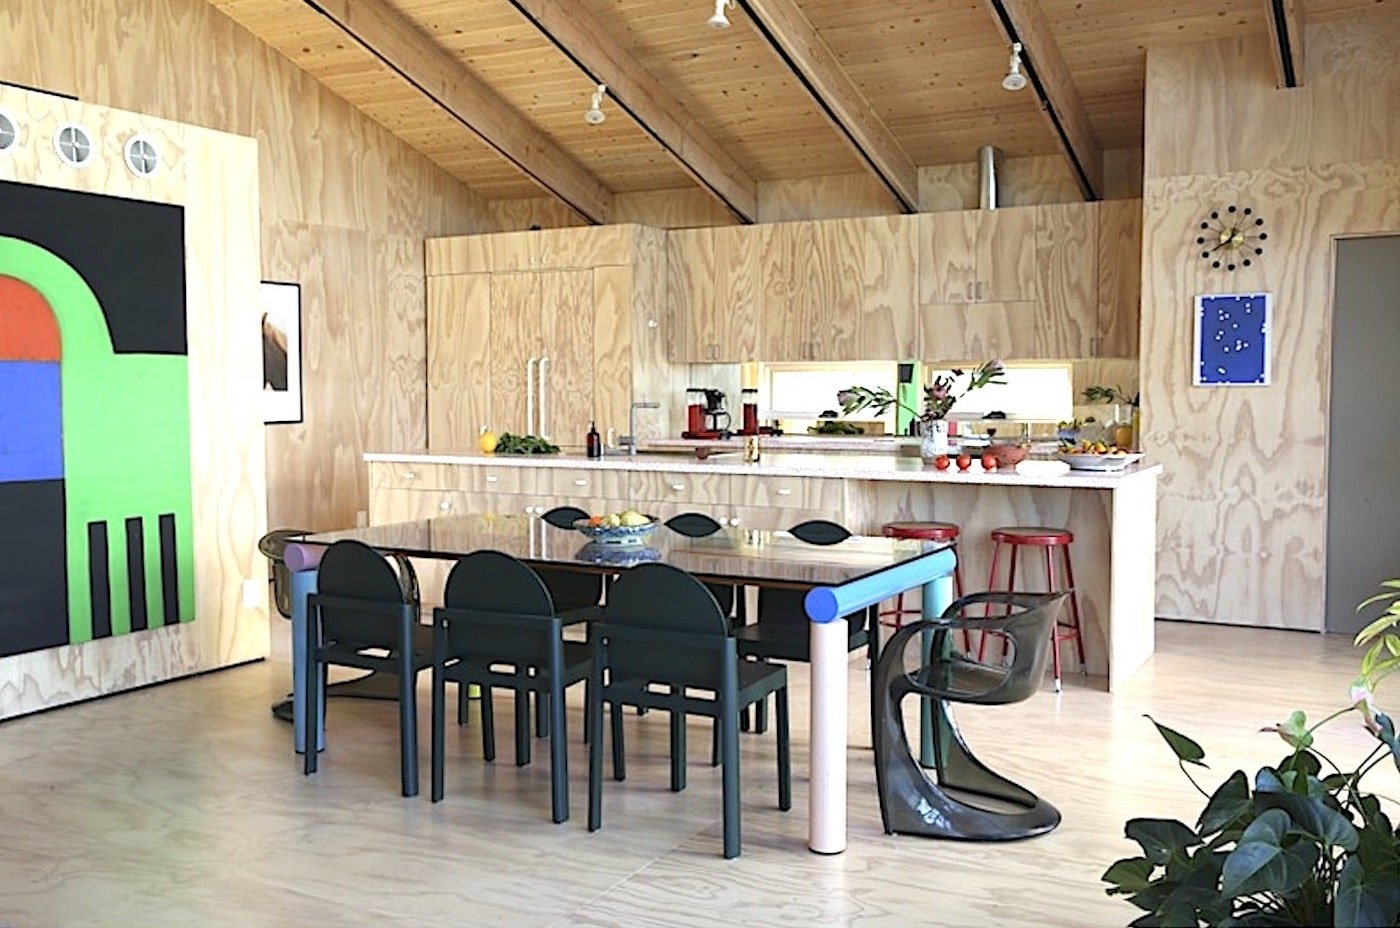 Timber kitchen with timber flooring, walls and ceiling